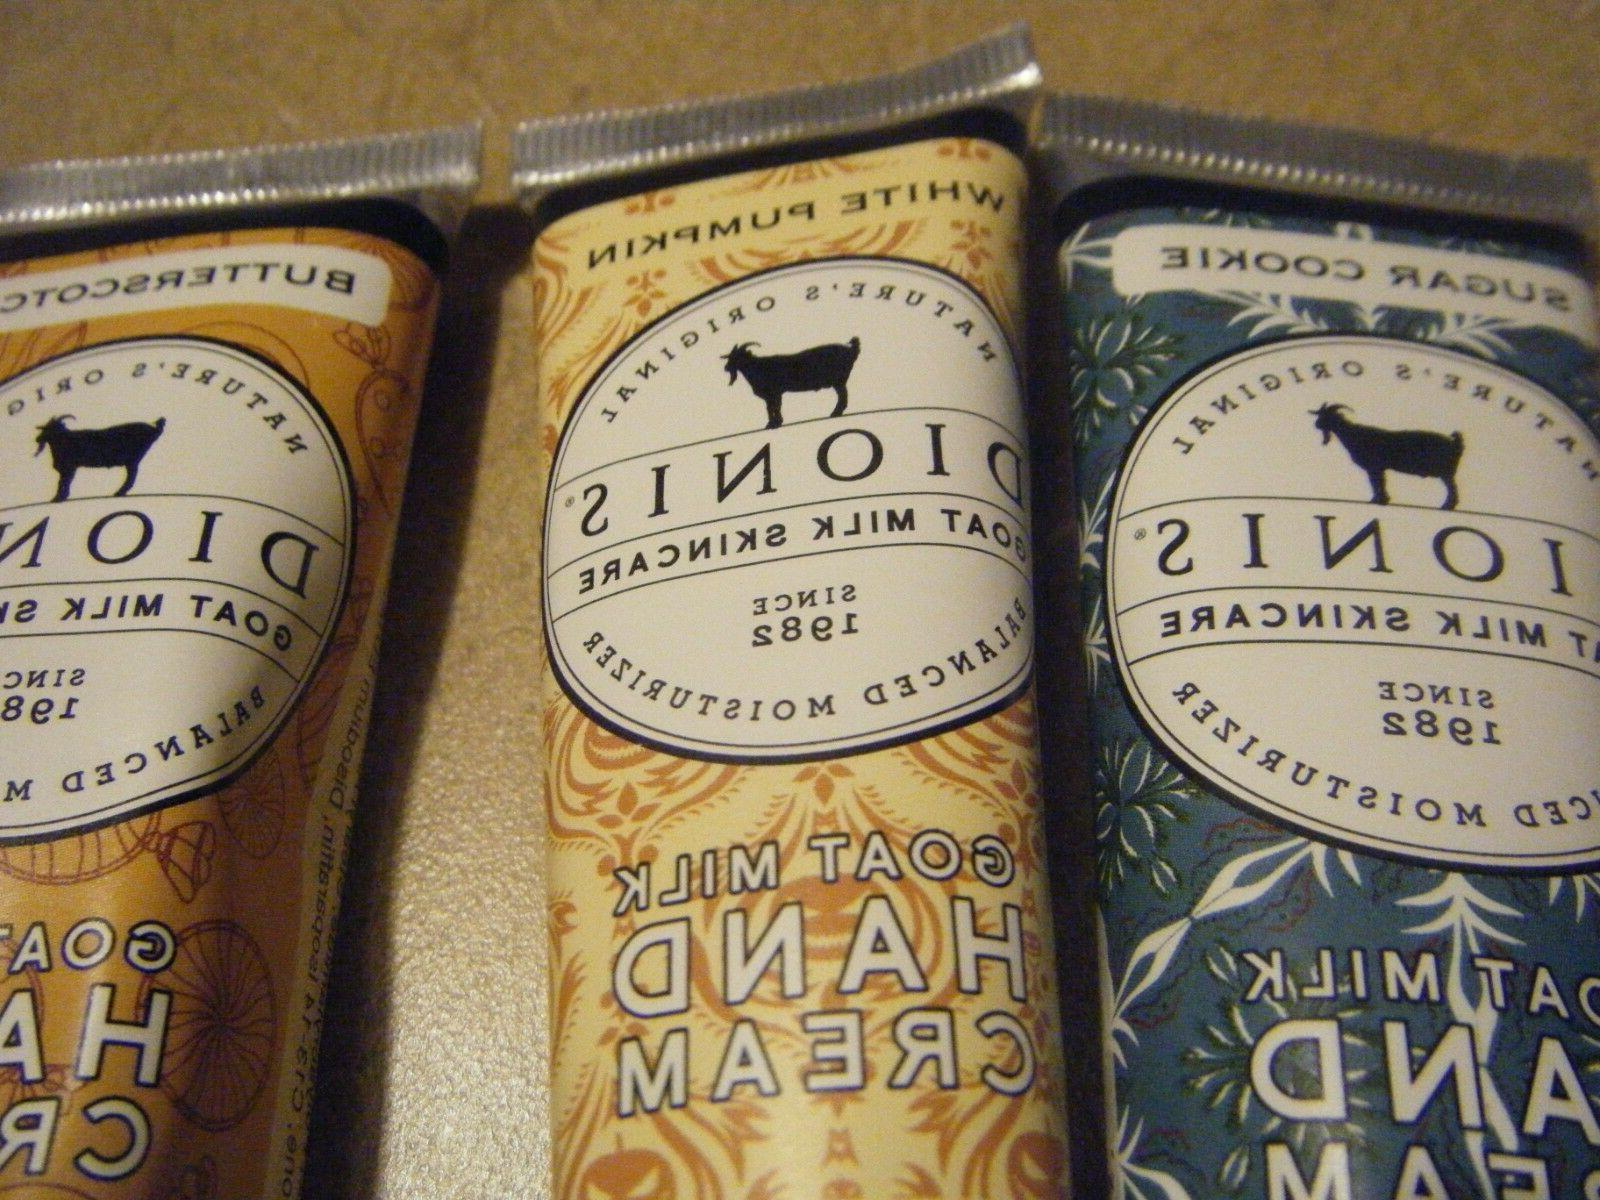 New Dionis Goat set of 3 scents - each fl